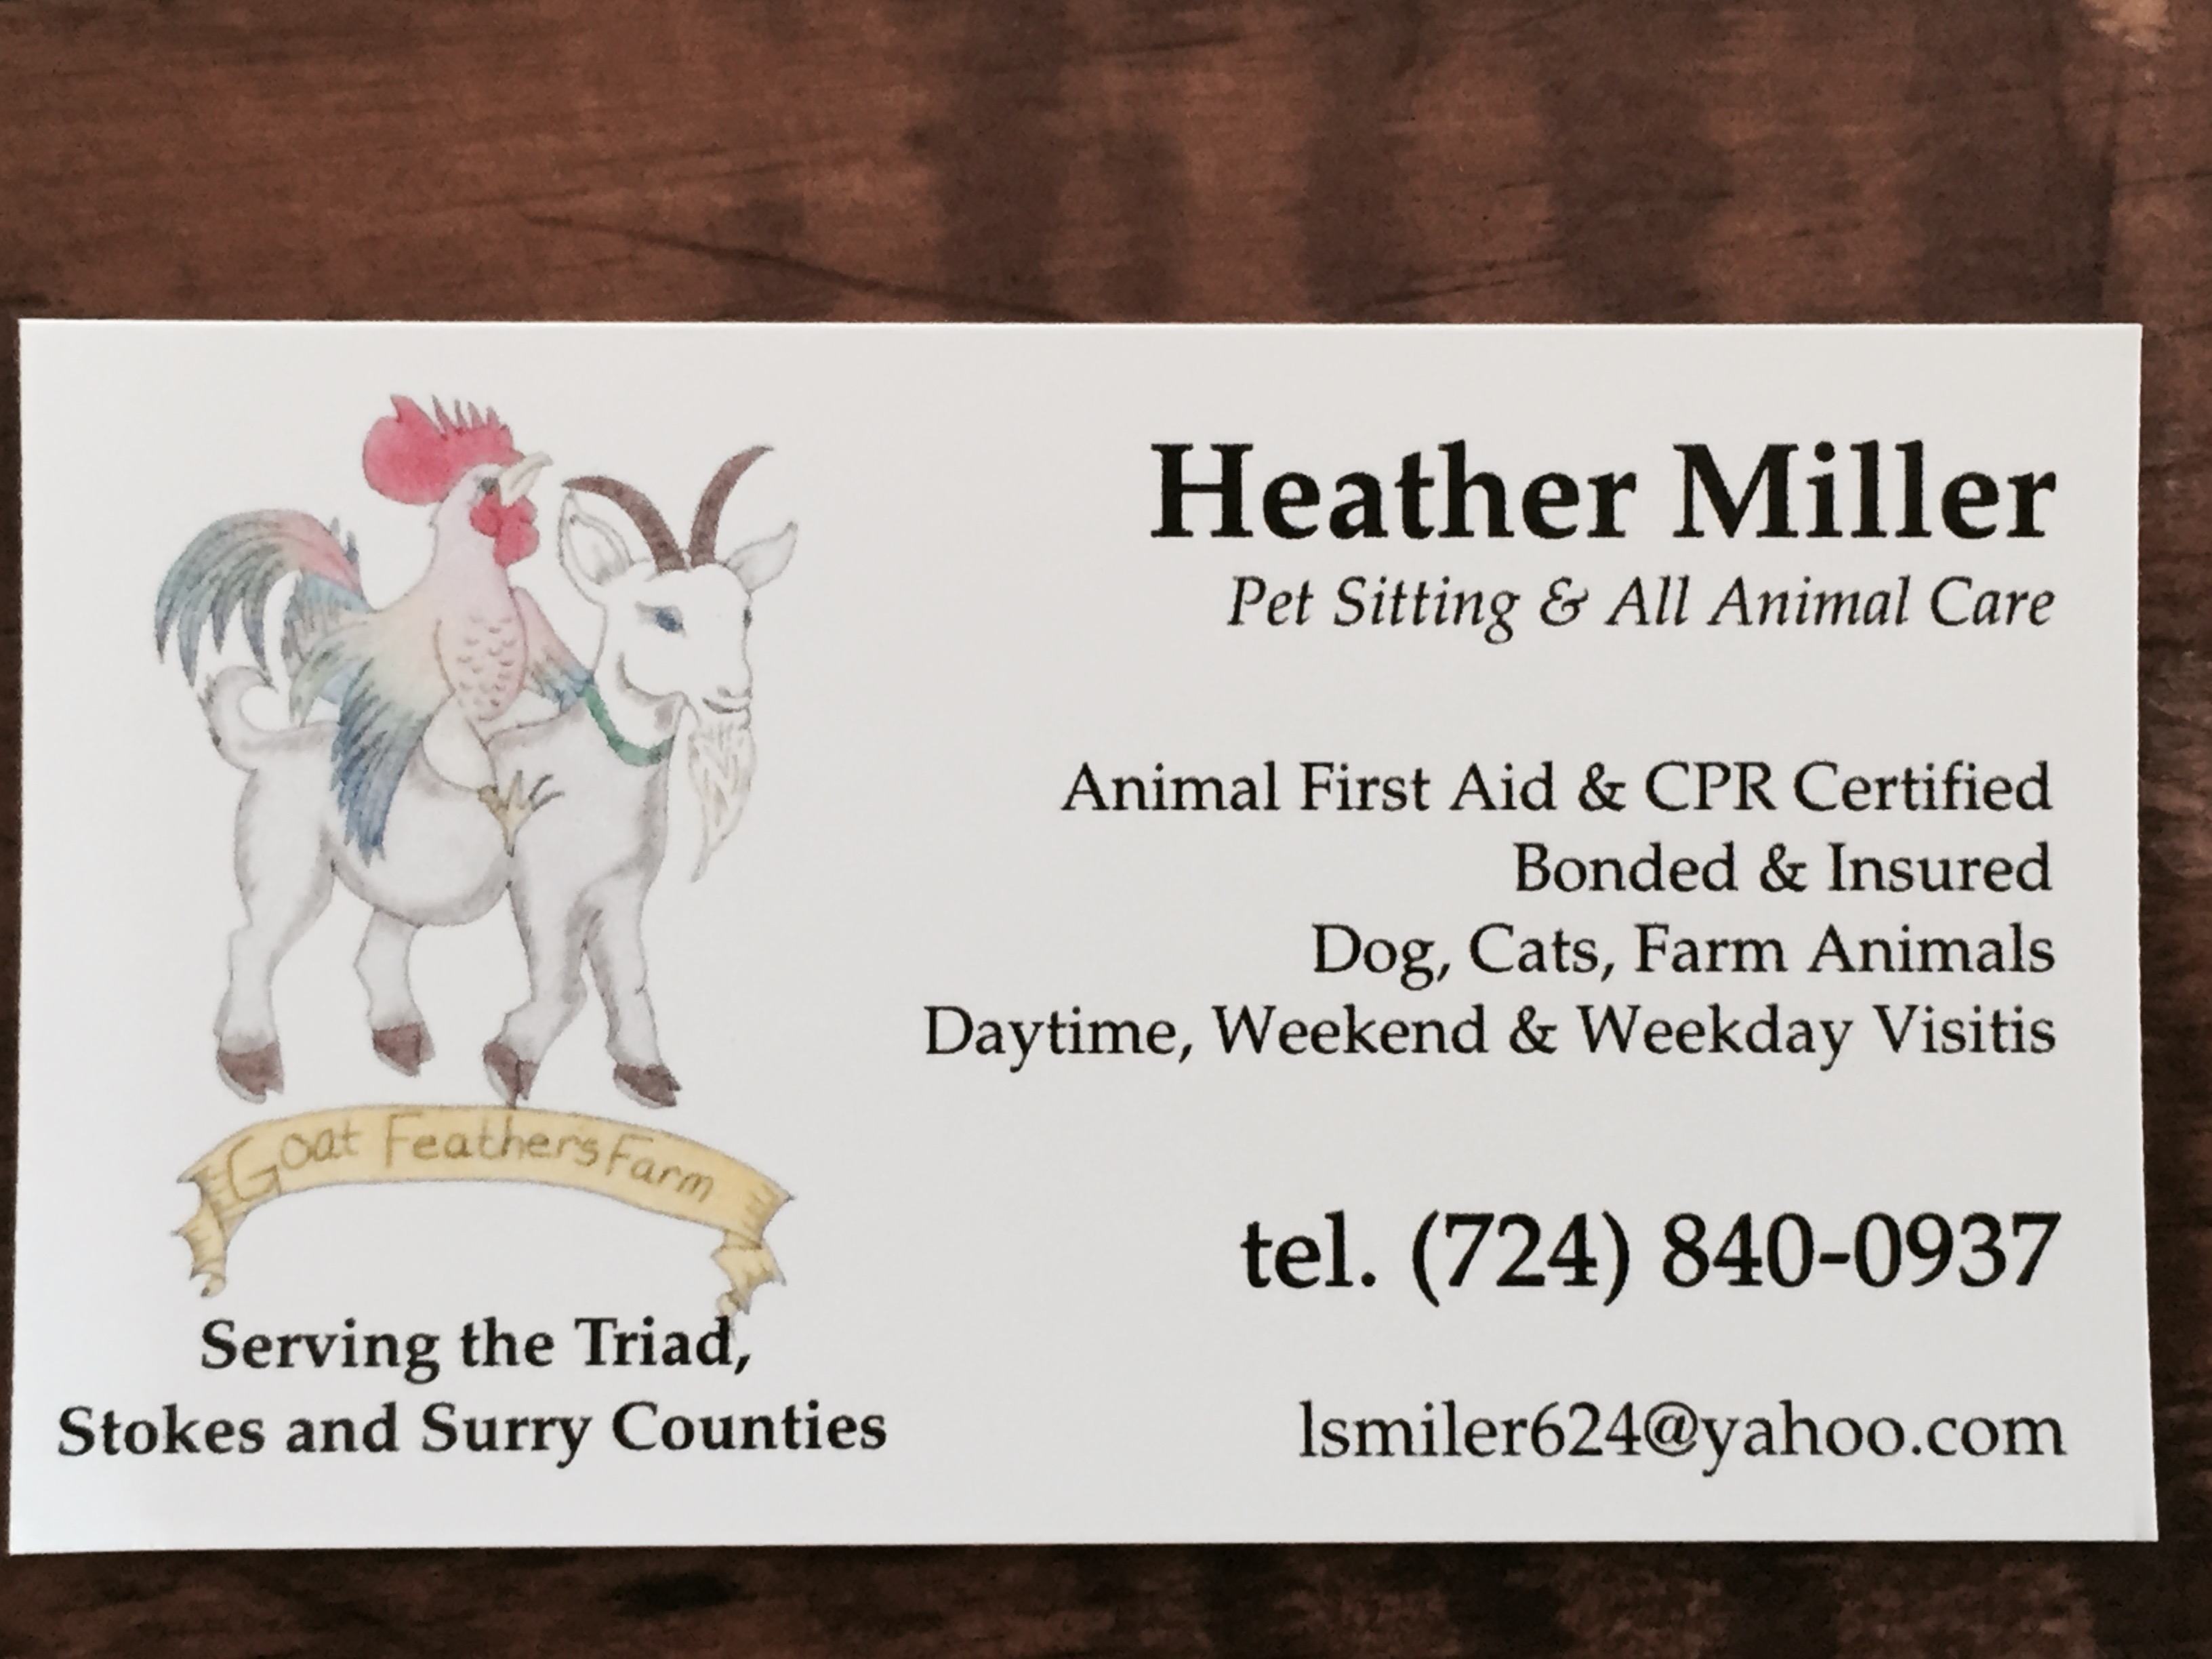 King nc certified professional pet sitter goat feathers farm 1betcityfo Choice Image